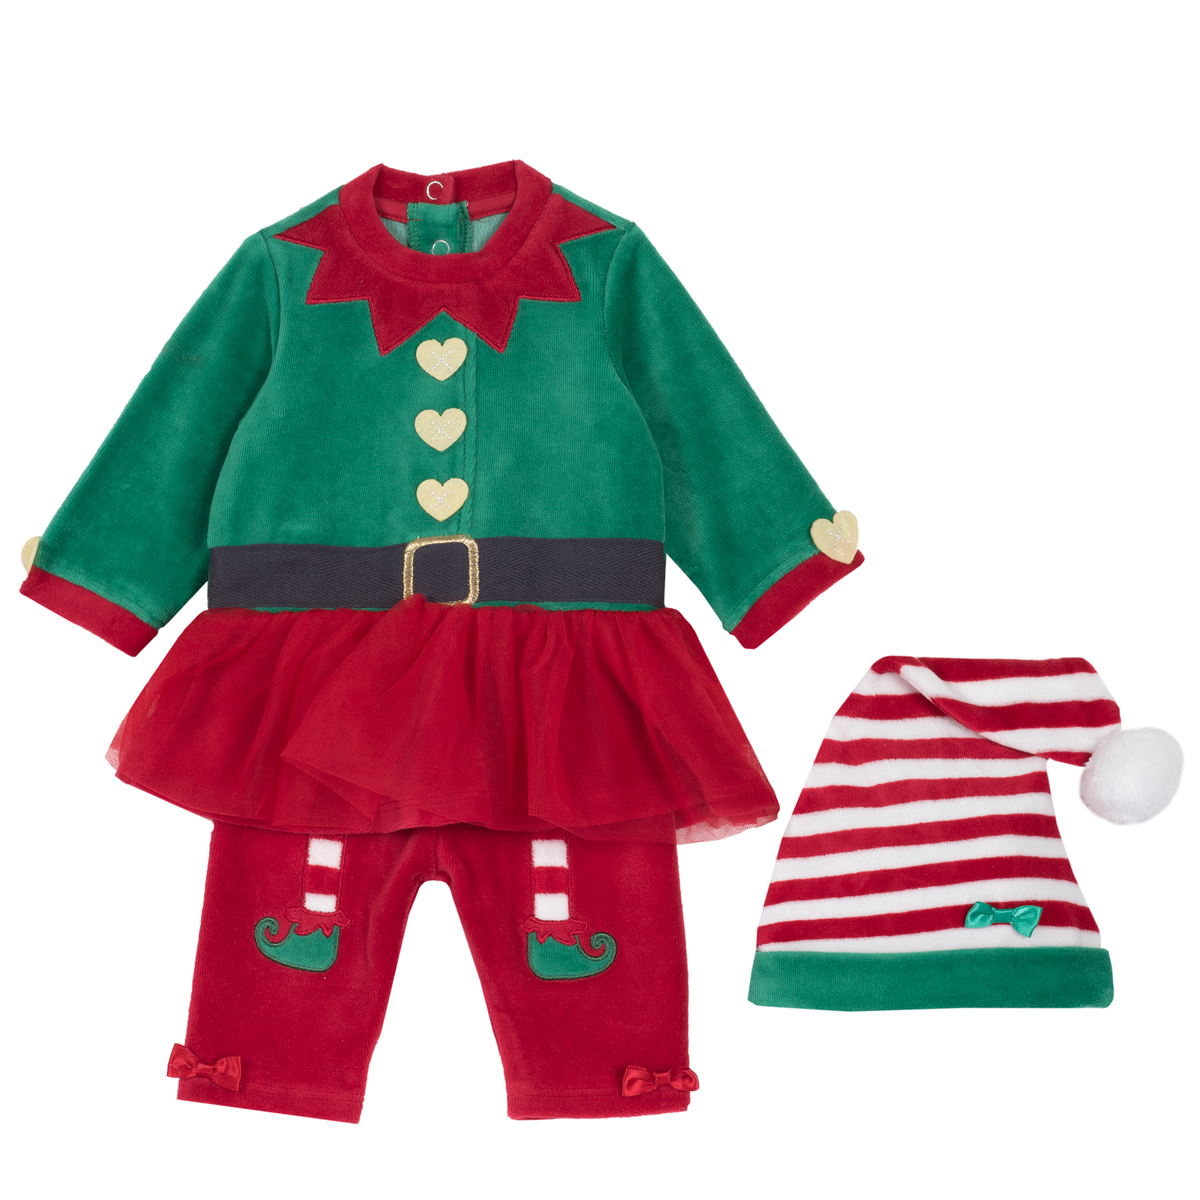 Set costumas Chicco spiridus fata, verde cu rosu, 76352 din categoria My First Christmas